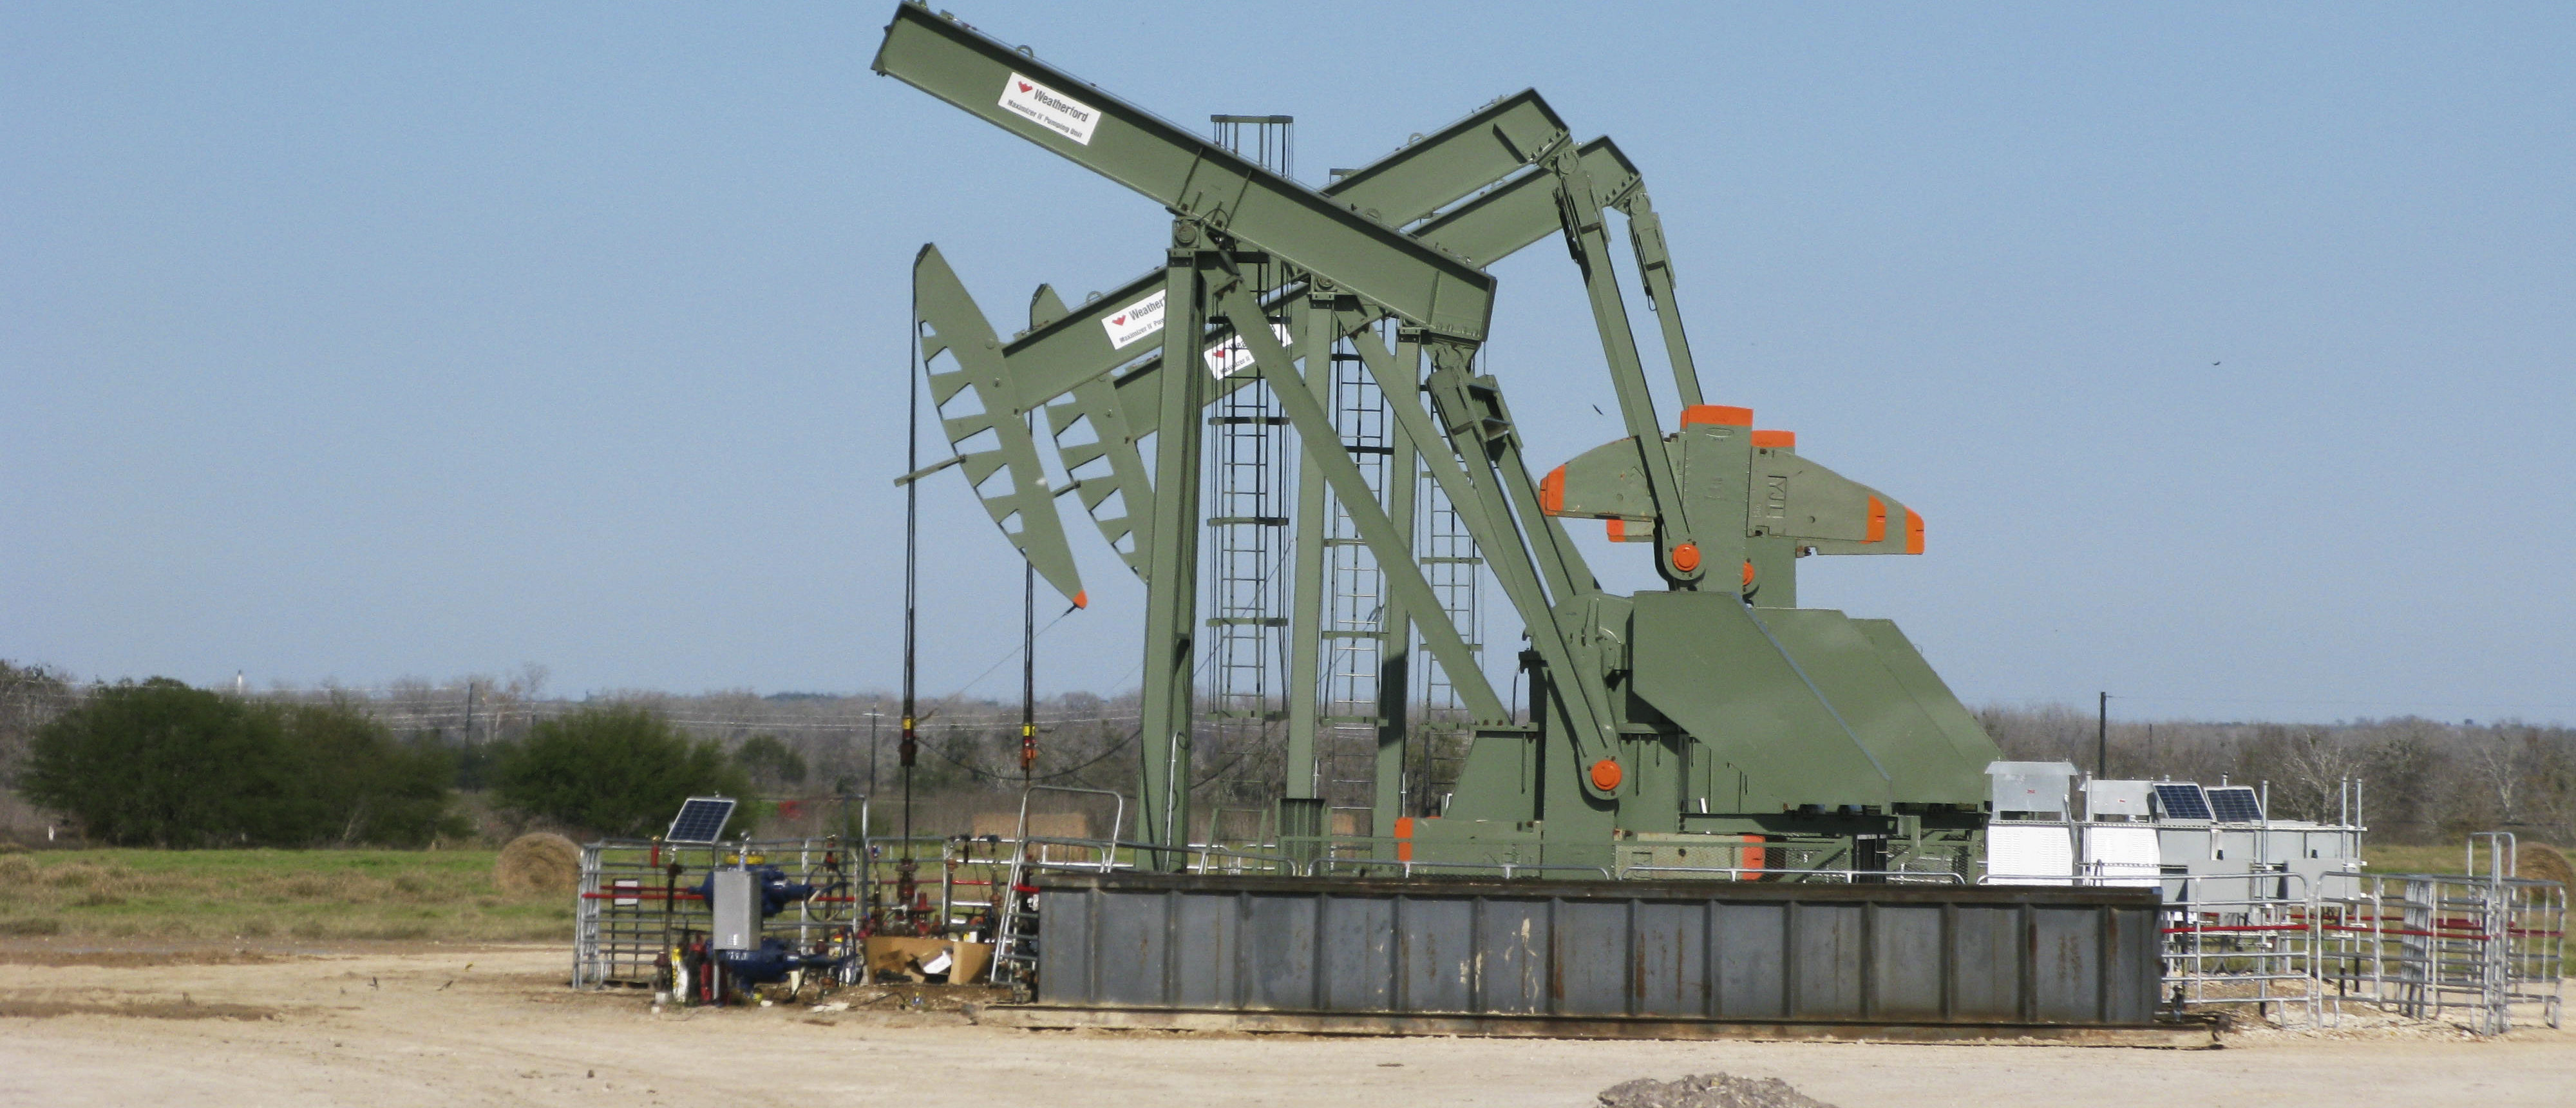 A pump jack stands idle in Dewitt County, Texas January 13, 2016. U.S. shale companies, which led the fracking revolution that unlocked vast new supplies of crude from rock, are fast losing their footing as a deeper plunge in oil to below $30 a barrel intensifies a financial tailspin that started more than a year ago. Picture taken on January 13, 2016. REUTERS/Anna Driver -